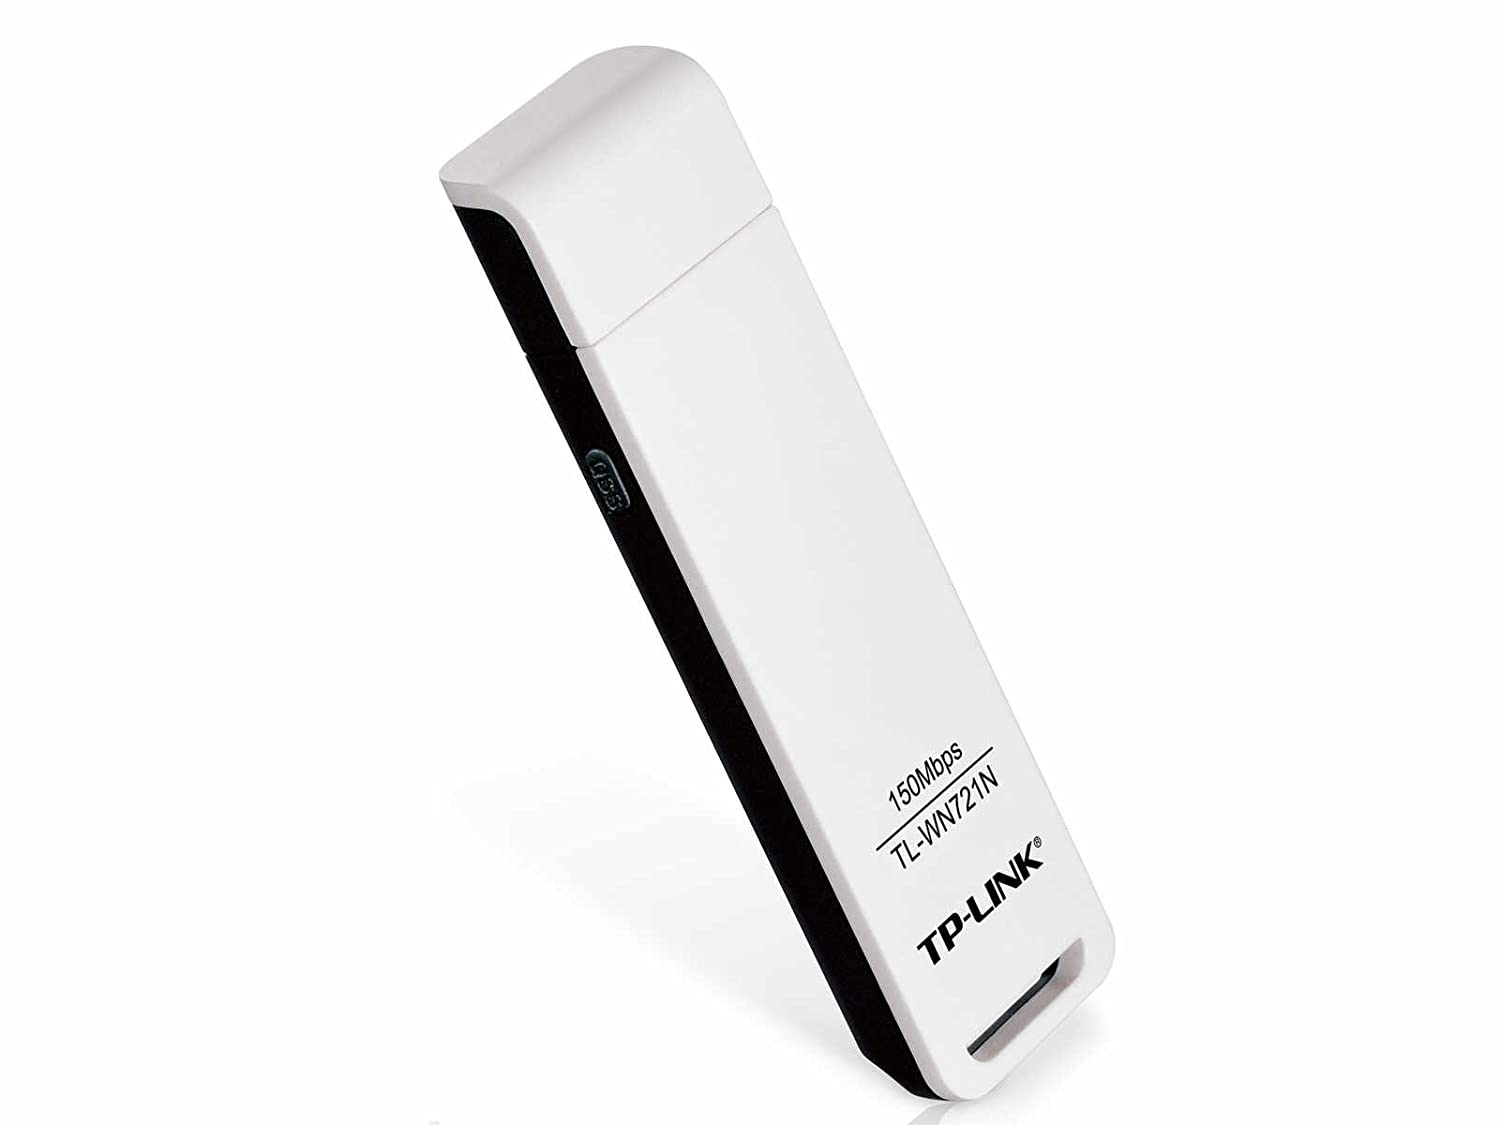 TP-Link TL-WN721N Wireless N150 USB Adapter, 150 Mbps with WPS